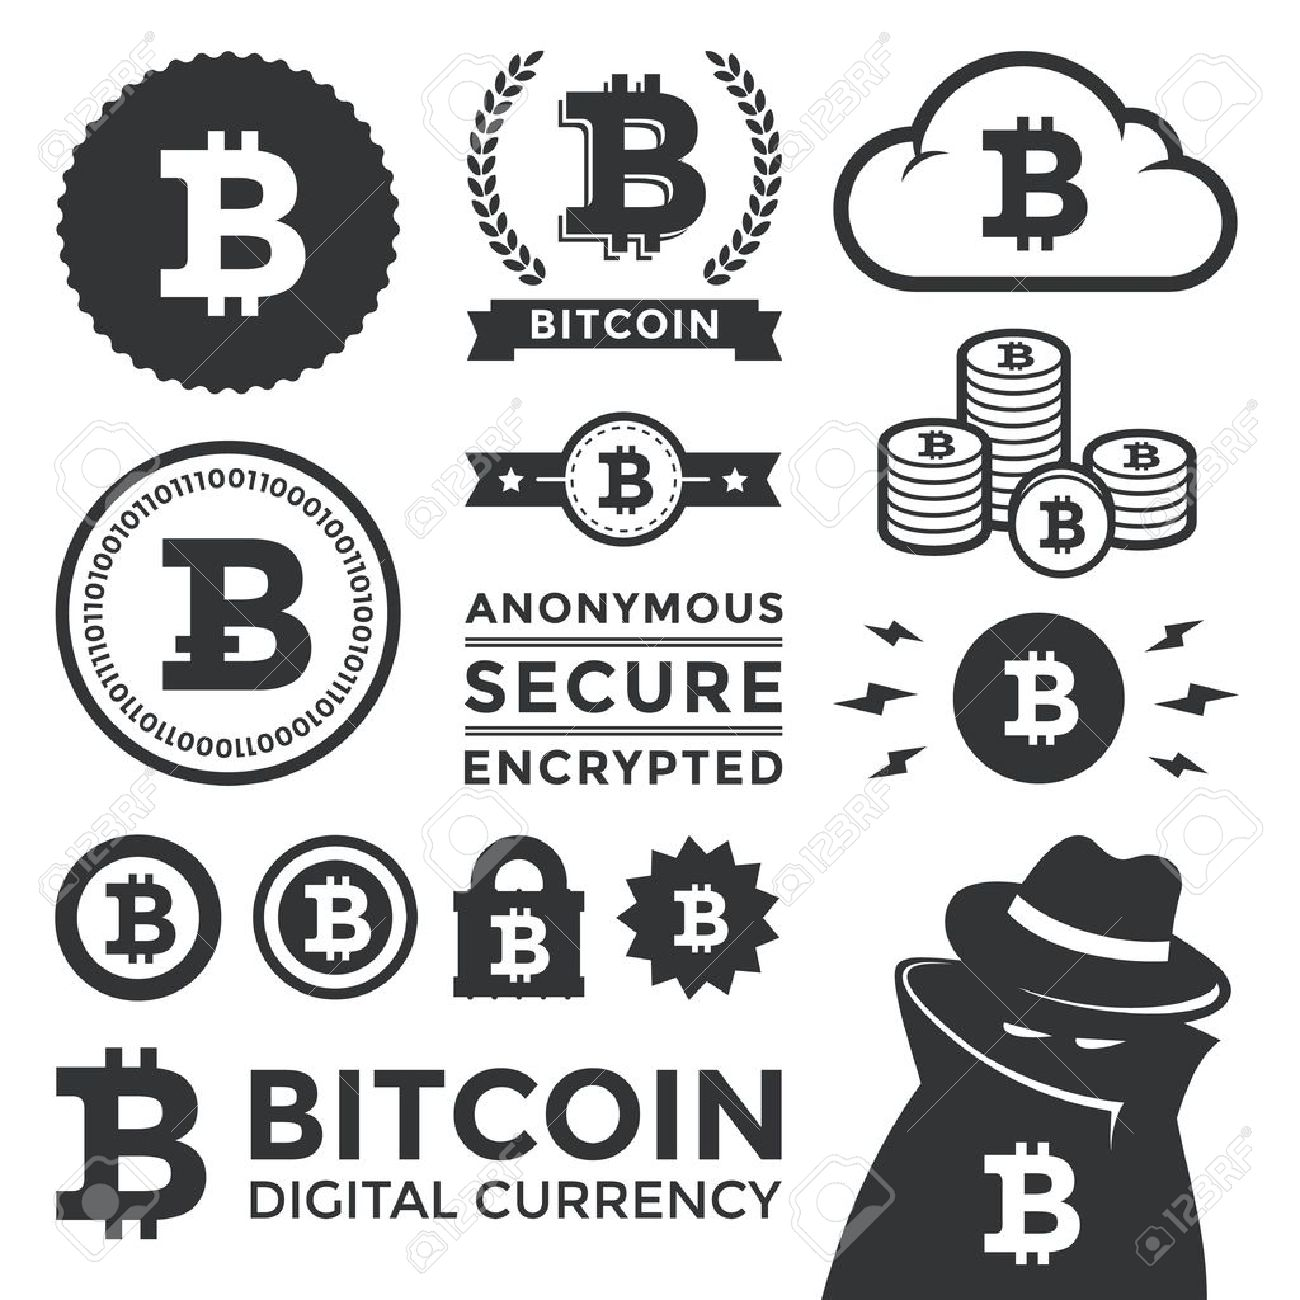 Currency Design Elements Bit Coin Design Elements